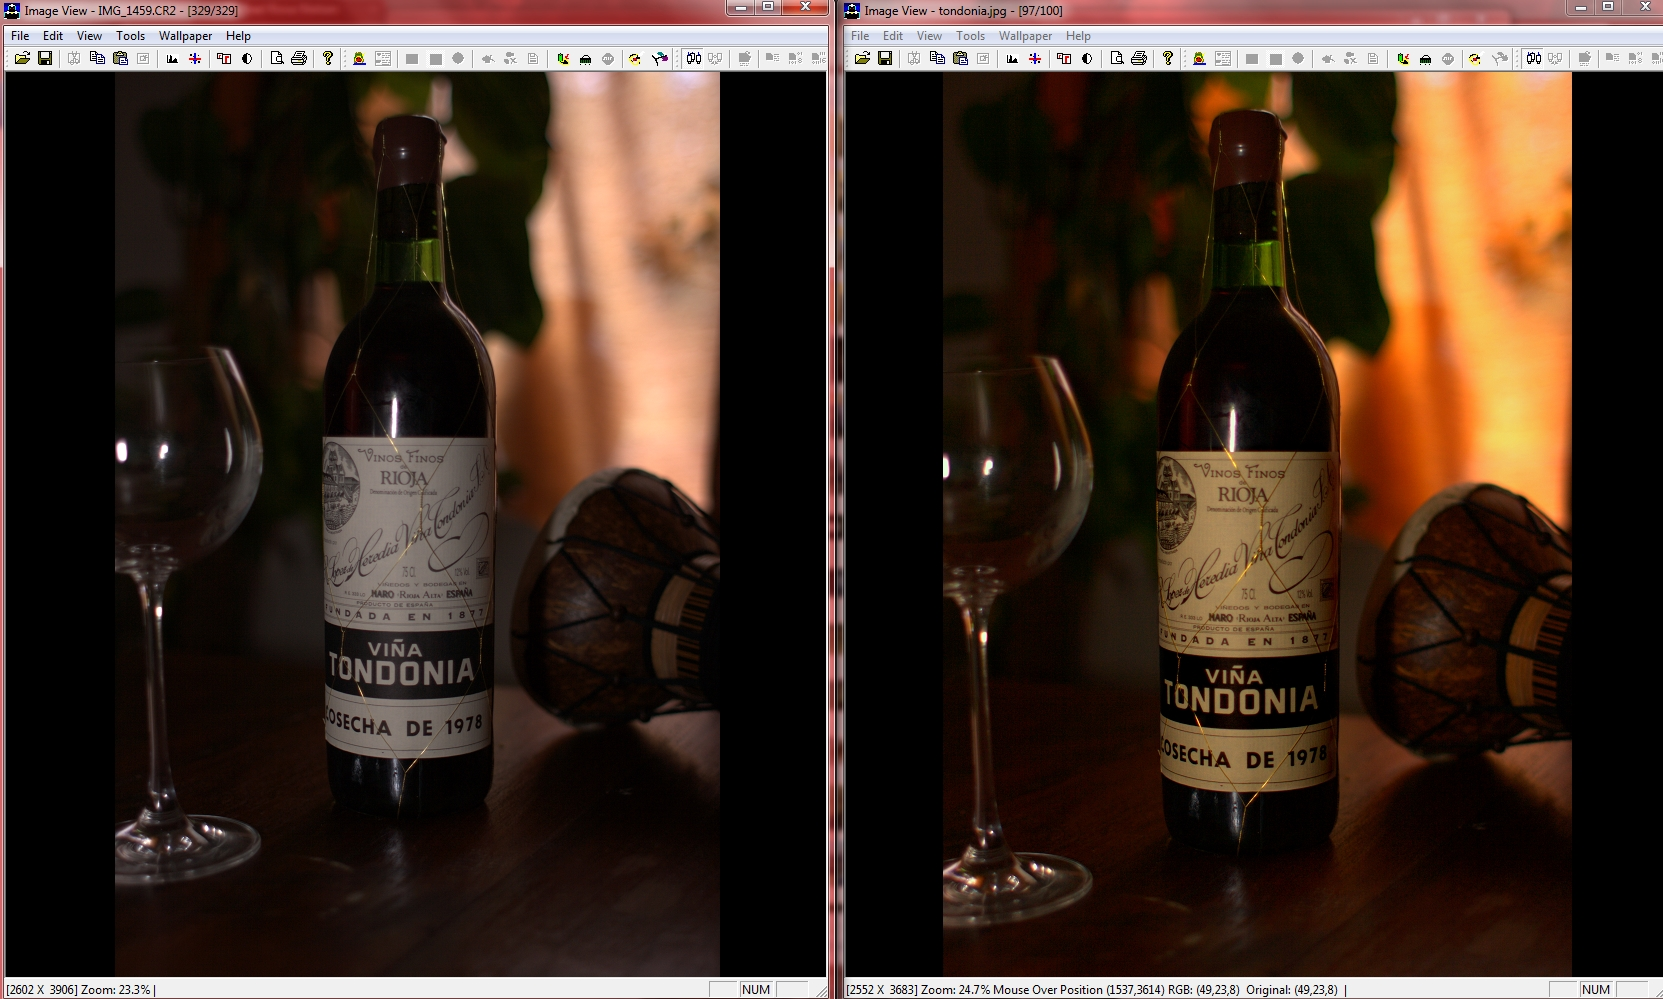 Canon Raw image (left: original, right: result) processed using rotation, crop, saturation, whitebalance, and selective contrast enhancement with the retouching tool.